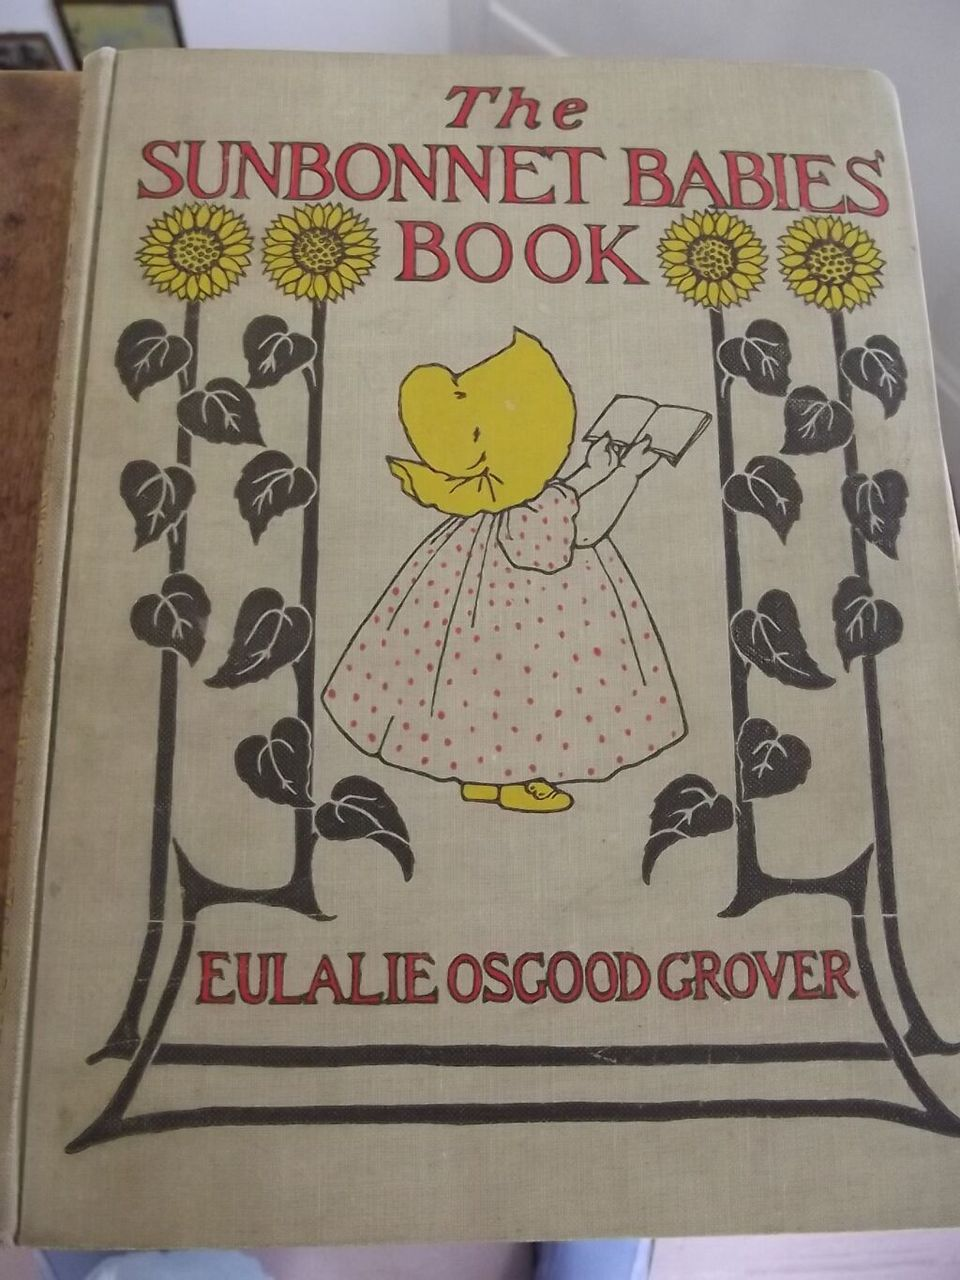 The Sunbonnet Babies Book